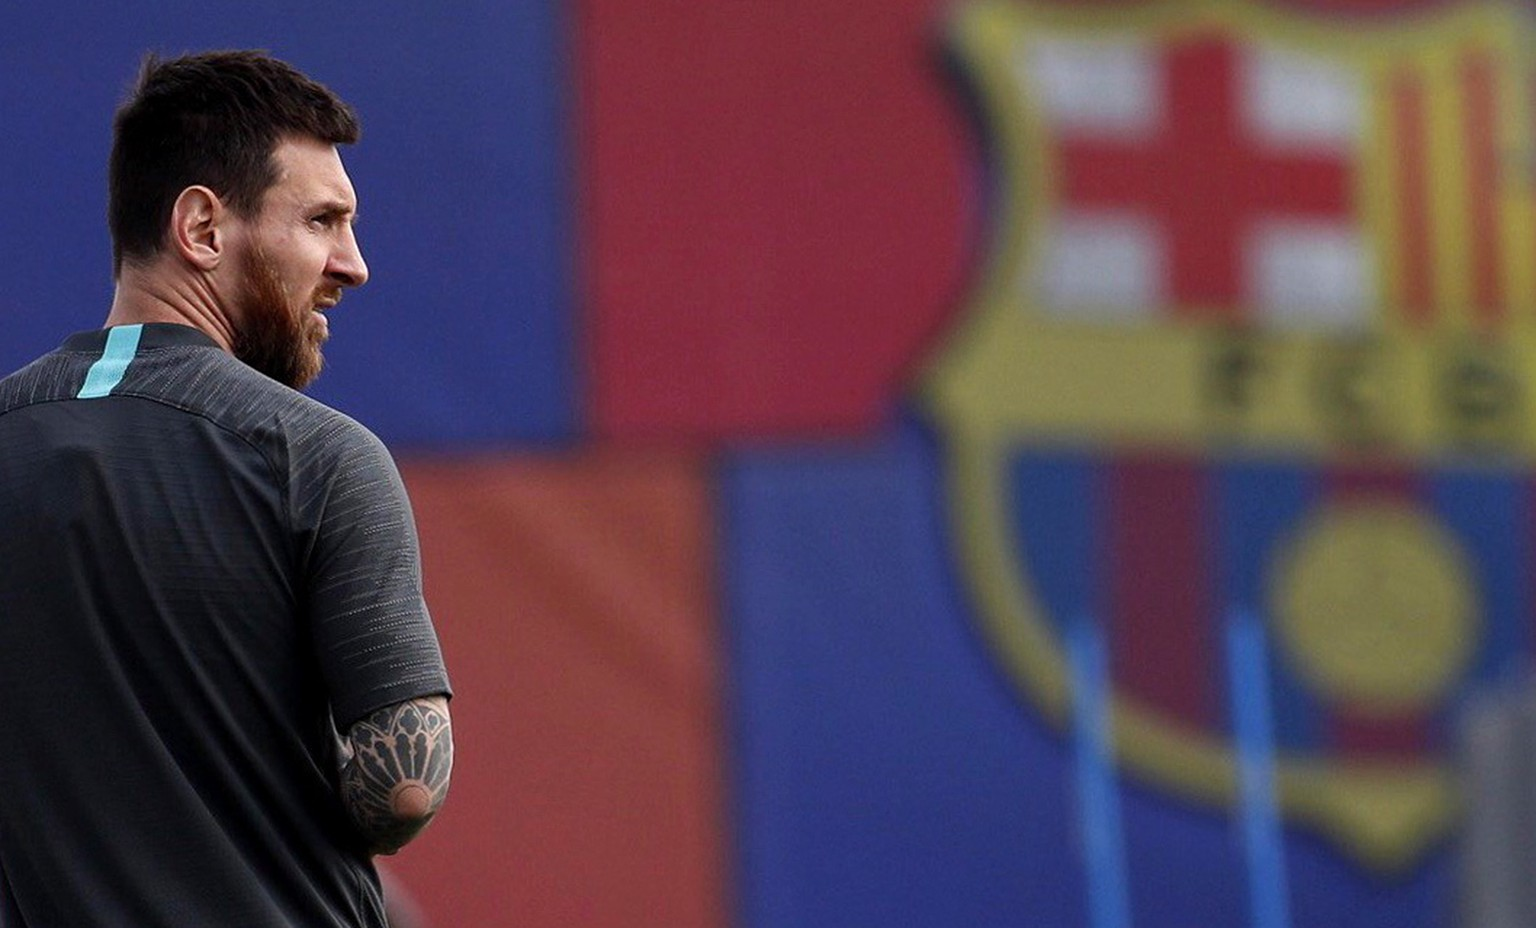 epa08625663 (FILE) - FC Barcelona's Argentine forward Lionel Messi takes part in a training session at the team's Joam Gamper sports city in Barcelona, Spain, 16 September 2019, re-issued 25 August 2020. Messi has sent a certified letter to the club  on 25 August communicating his intentions to leave the club.  EPA/Alejandro Garc